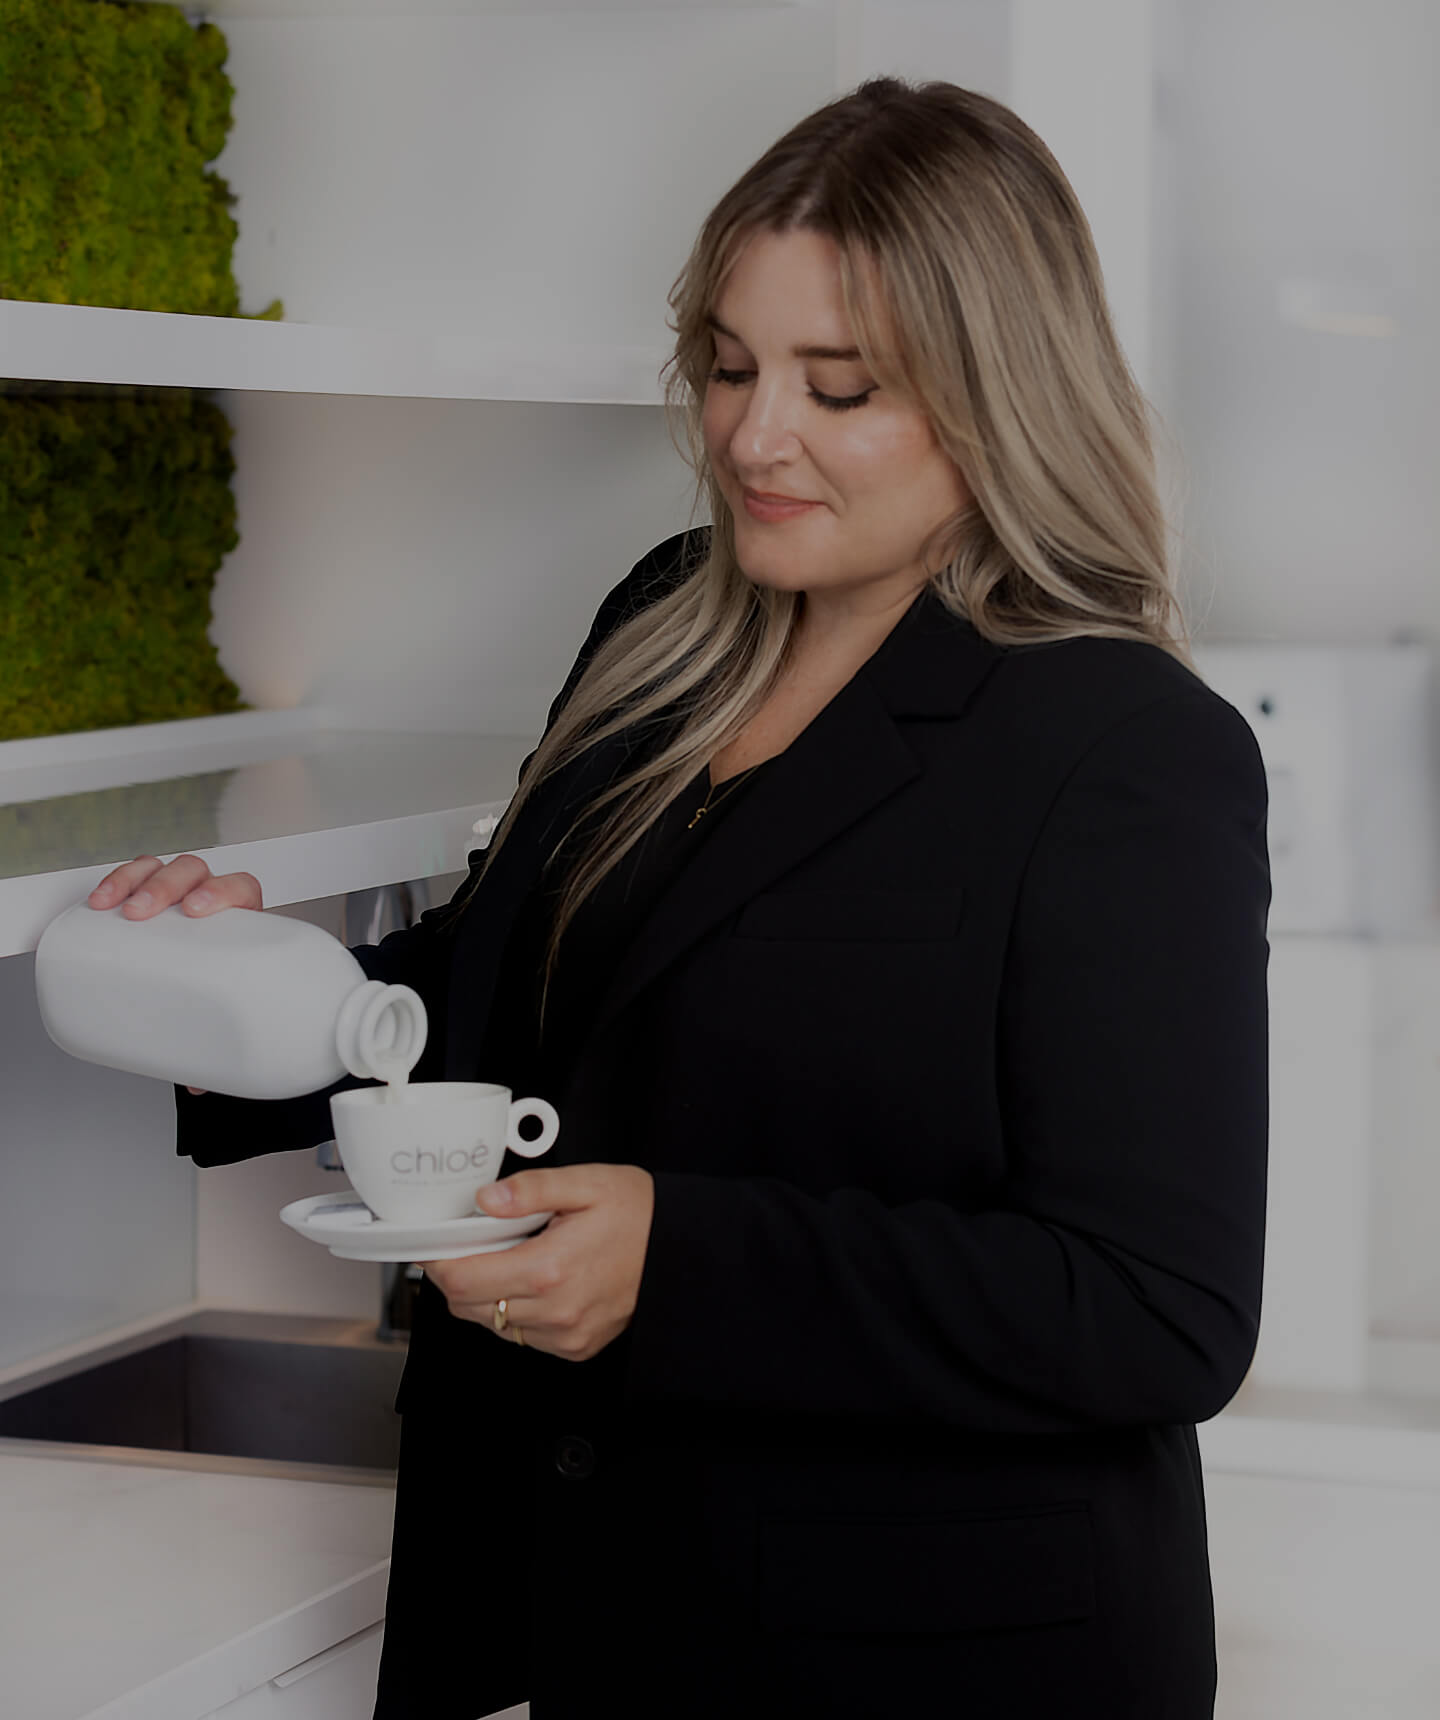 Medical receptionist Karine Leduc preparing a coffee for a patient in the waiting room of Clinique Chloé